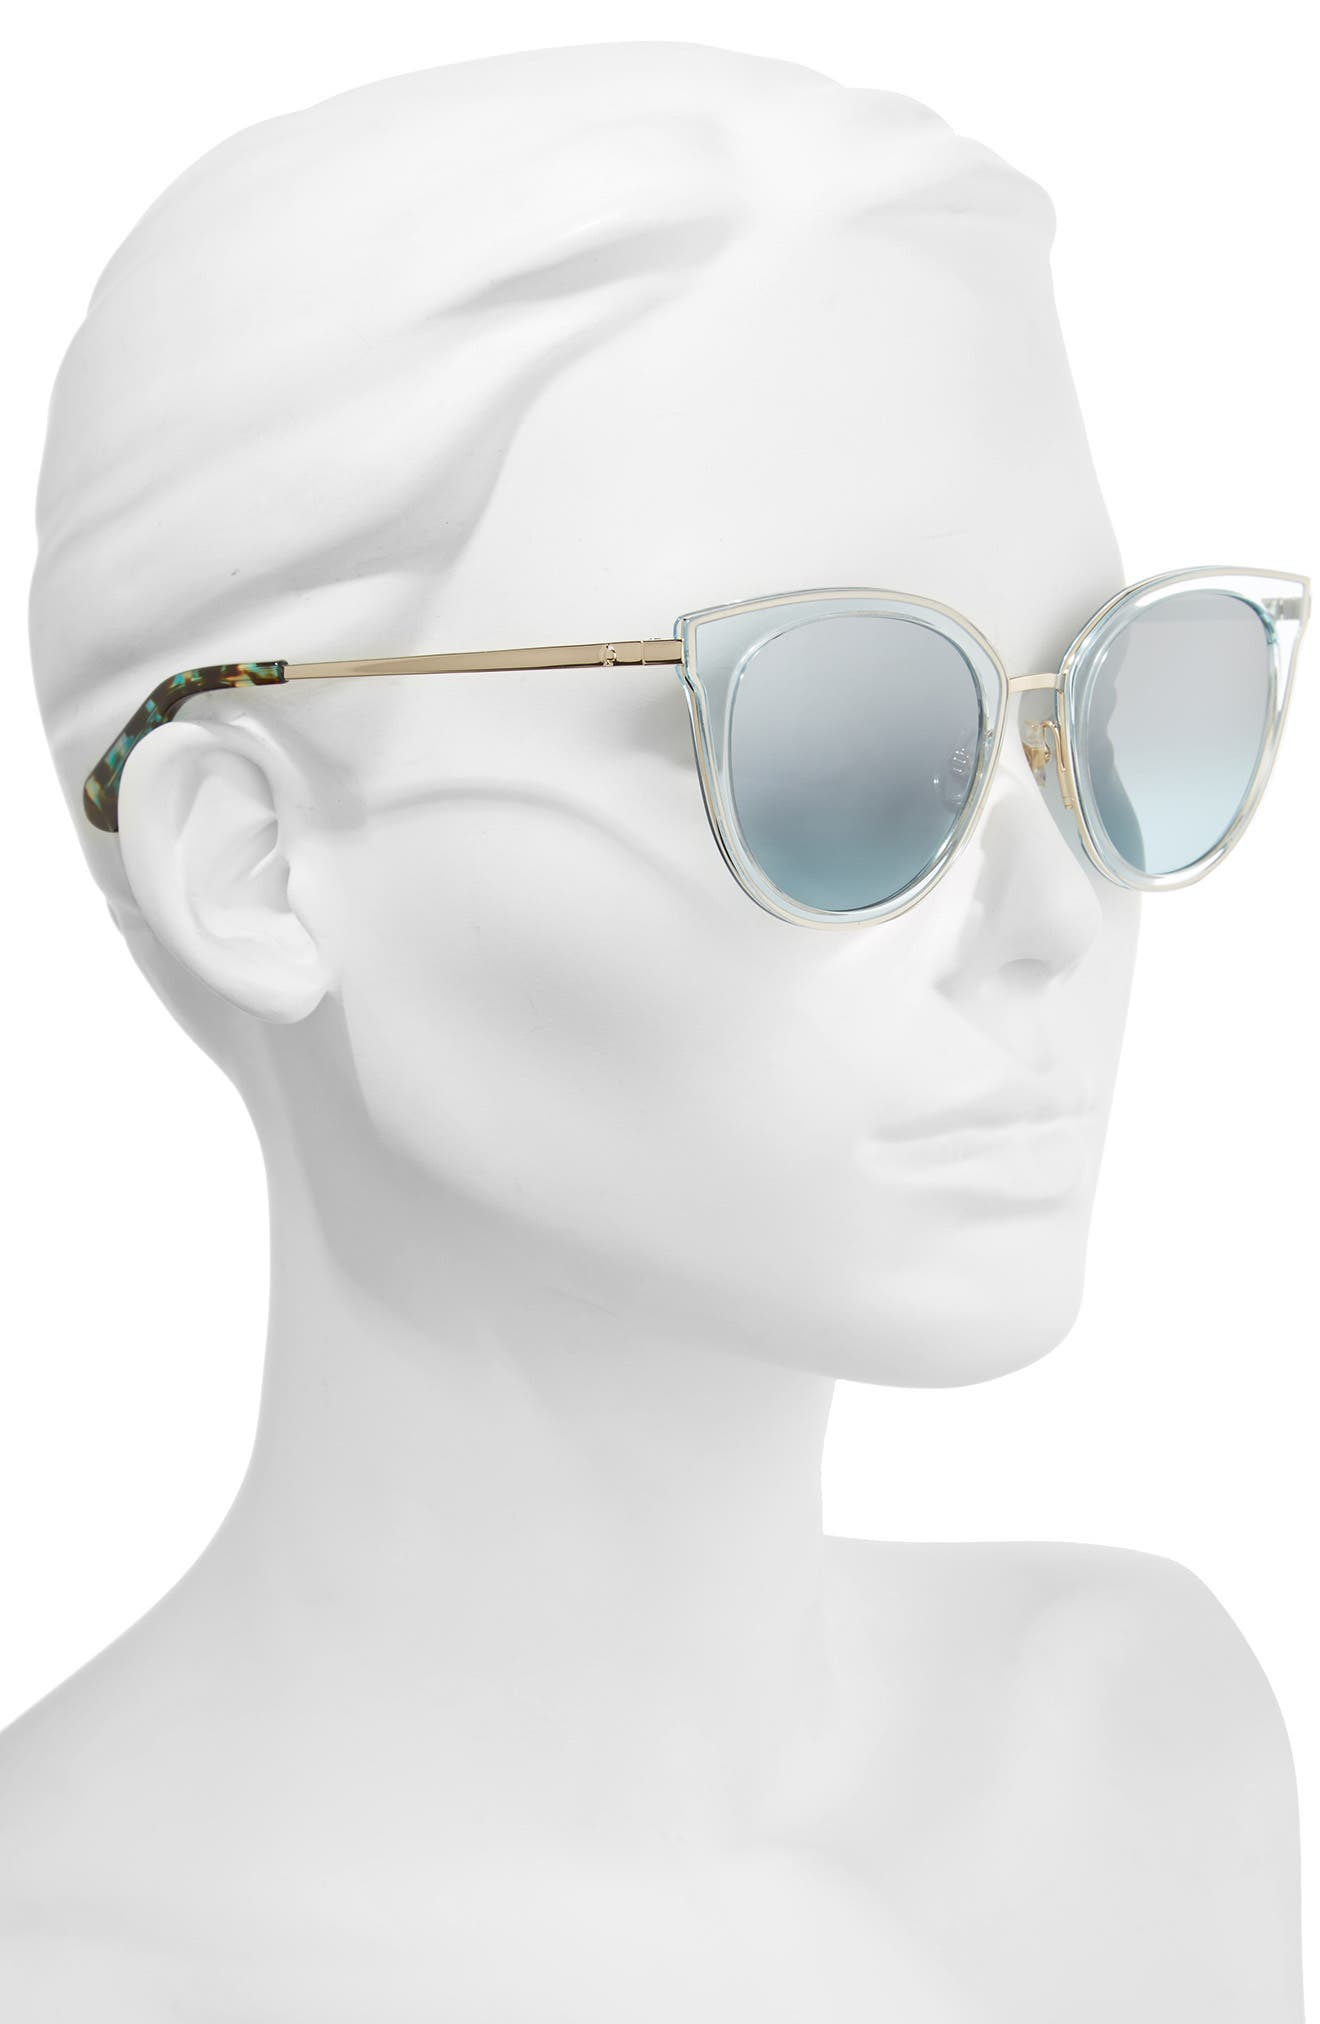 jazzlyn 51mm cat eye sunglasses,                             Alternate thumbnail 2, color,                             BLUE/ GOLD